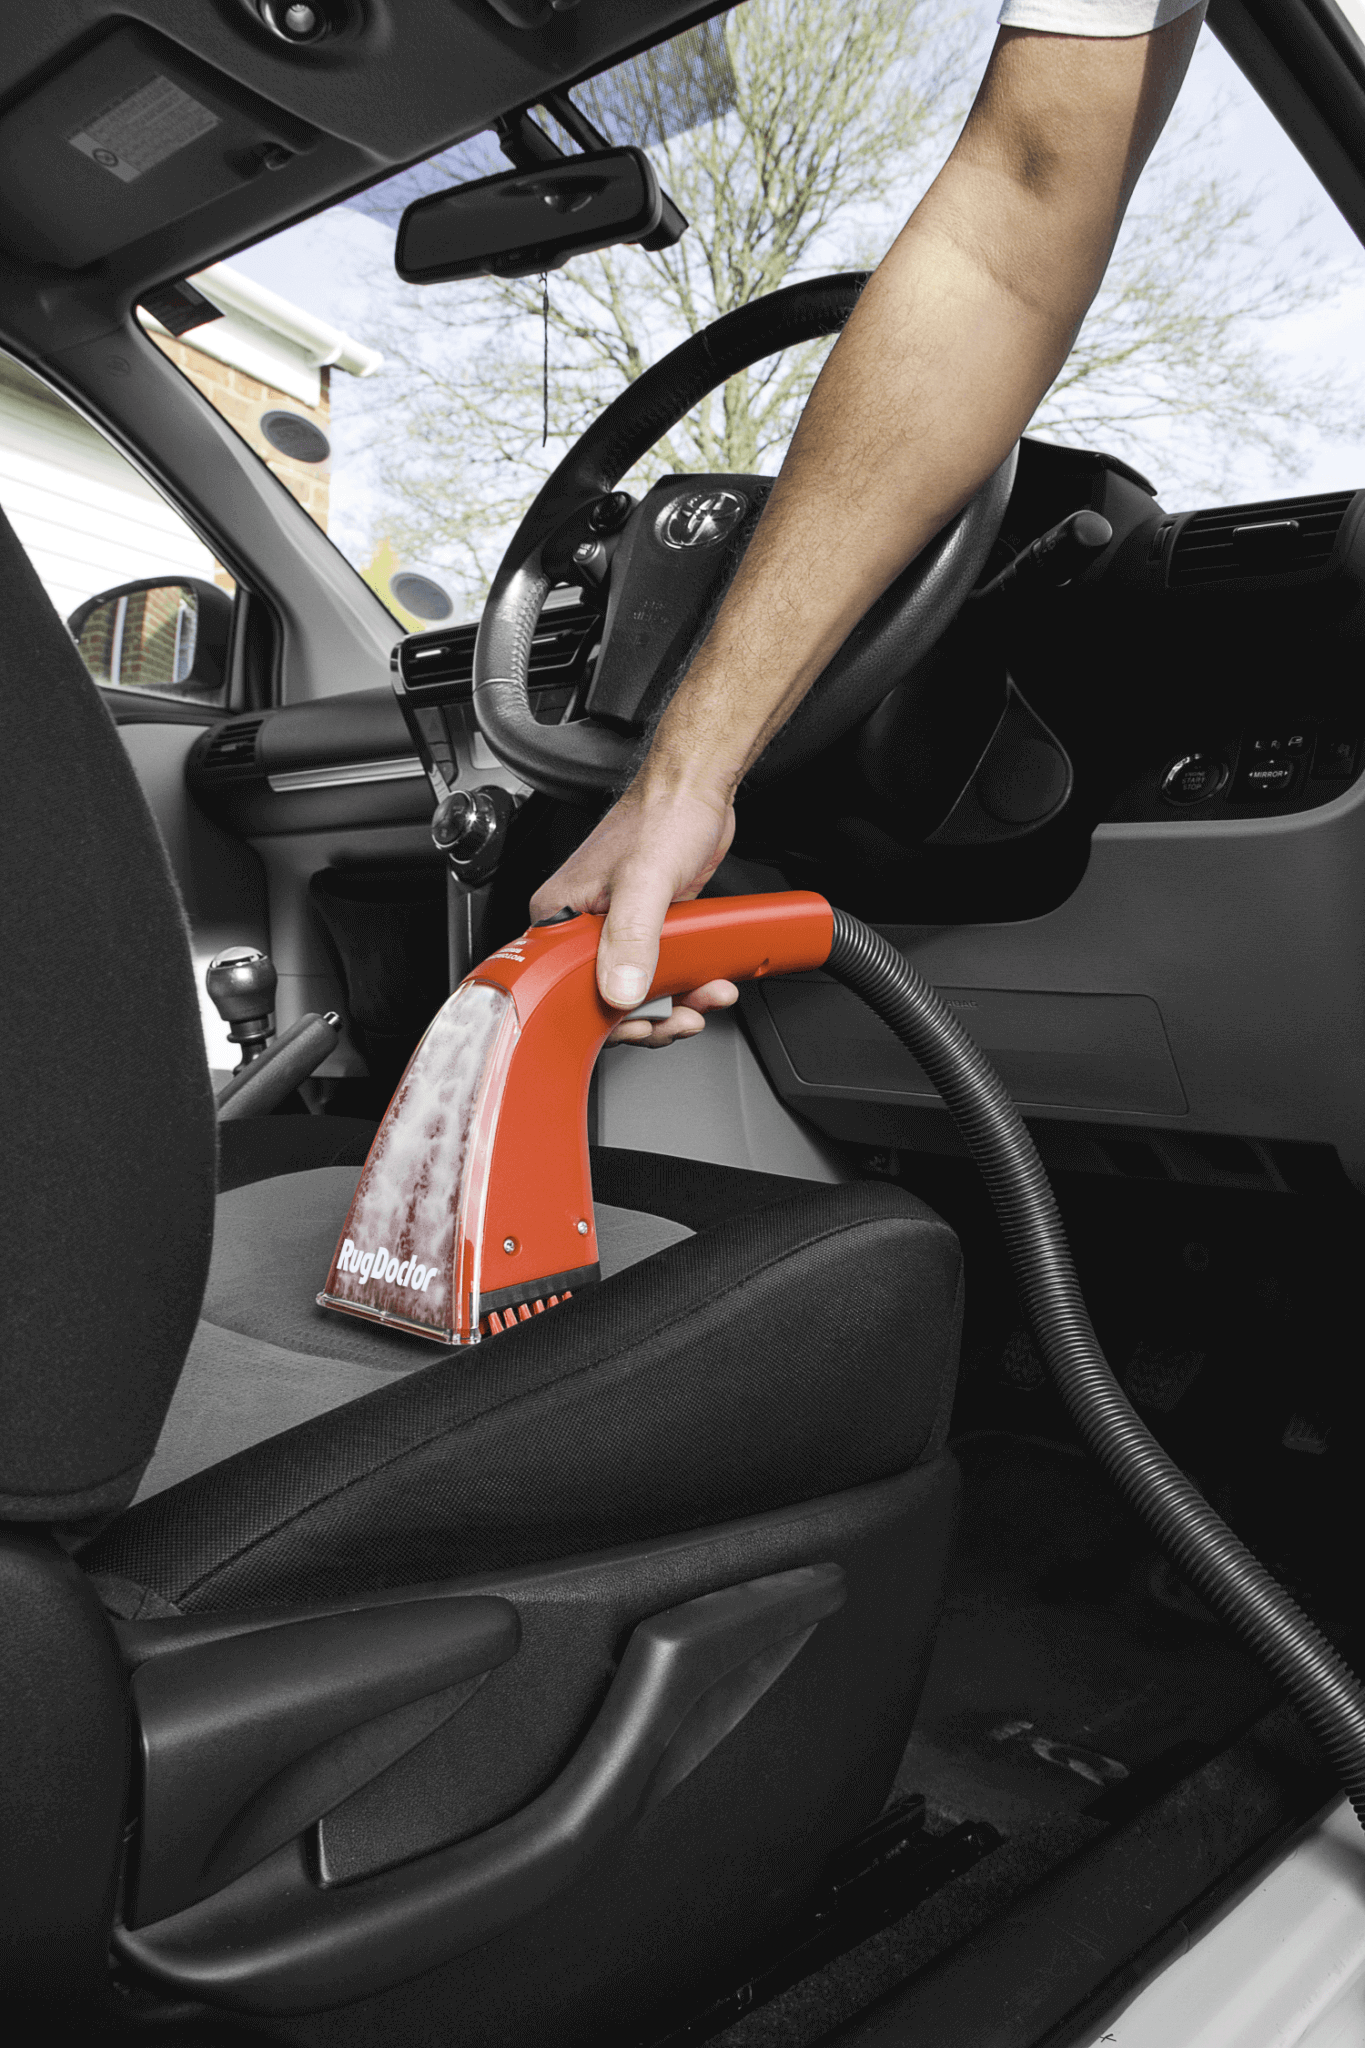 PSC-Car-Interior-Hand-Tool-A Portable Spot Cleaner